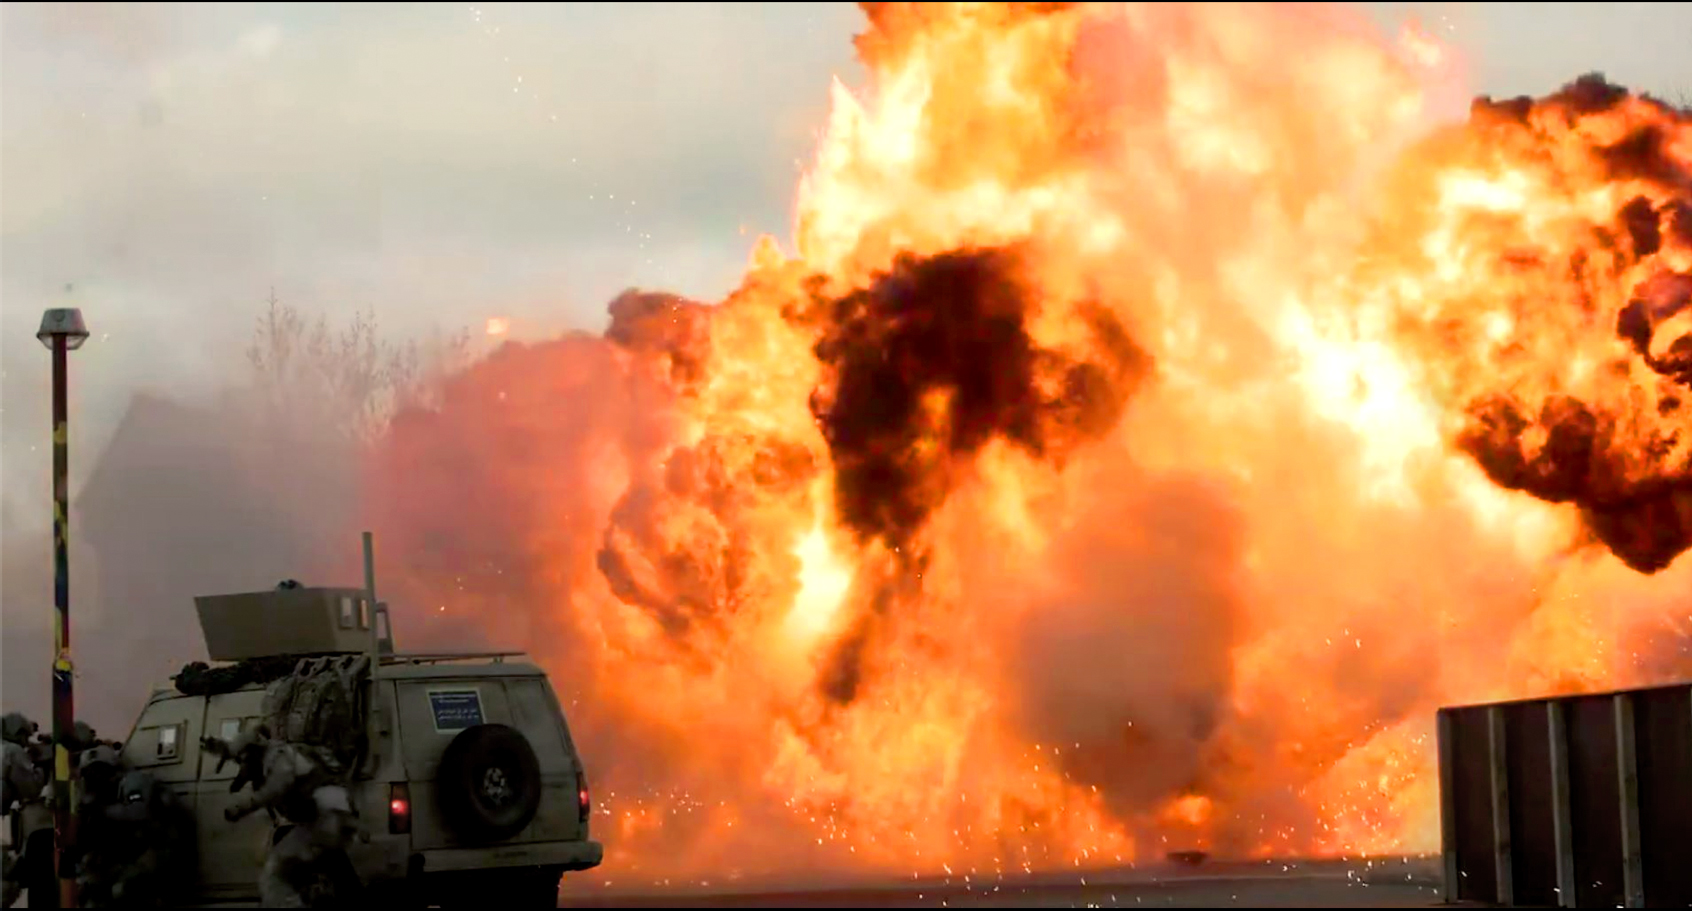 MG-Action, Martin Goeres, Special Forces, Explosion